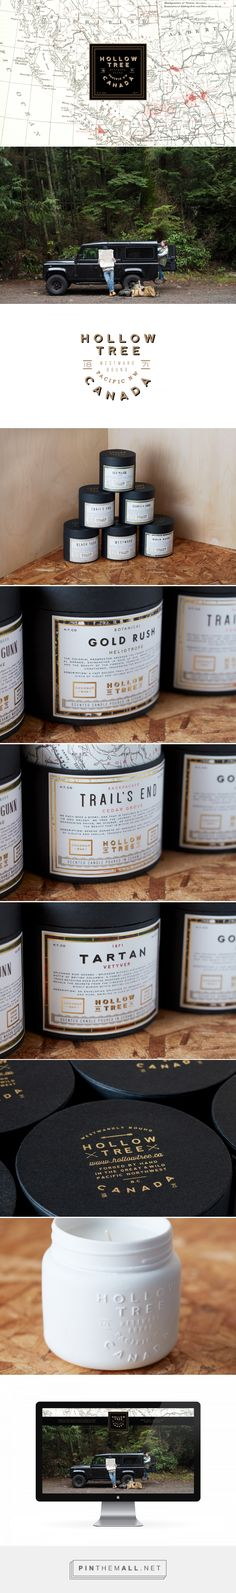 Hollow Tree Candle Packaging by Arithmetic | Fivestar Branding Agency – Design and Branding Agency & Curated Inspiration Gallery